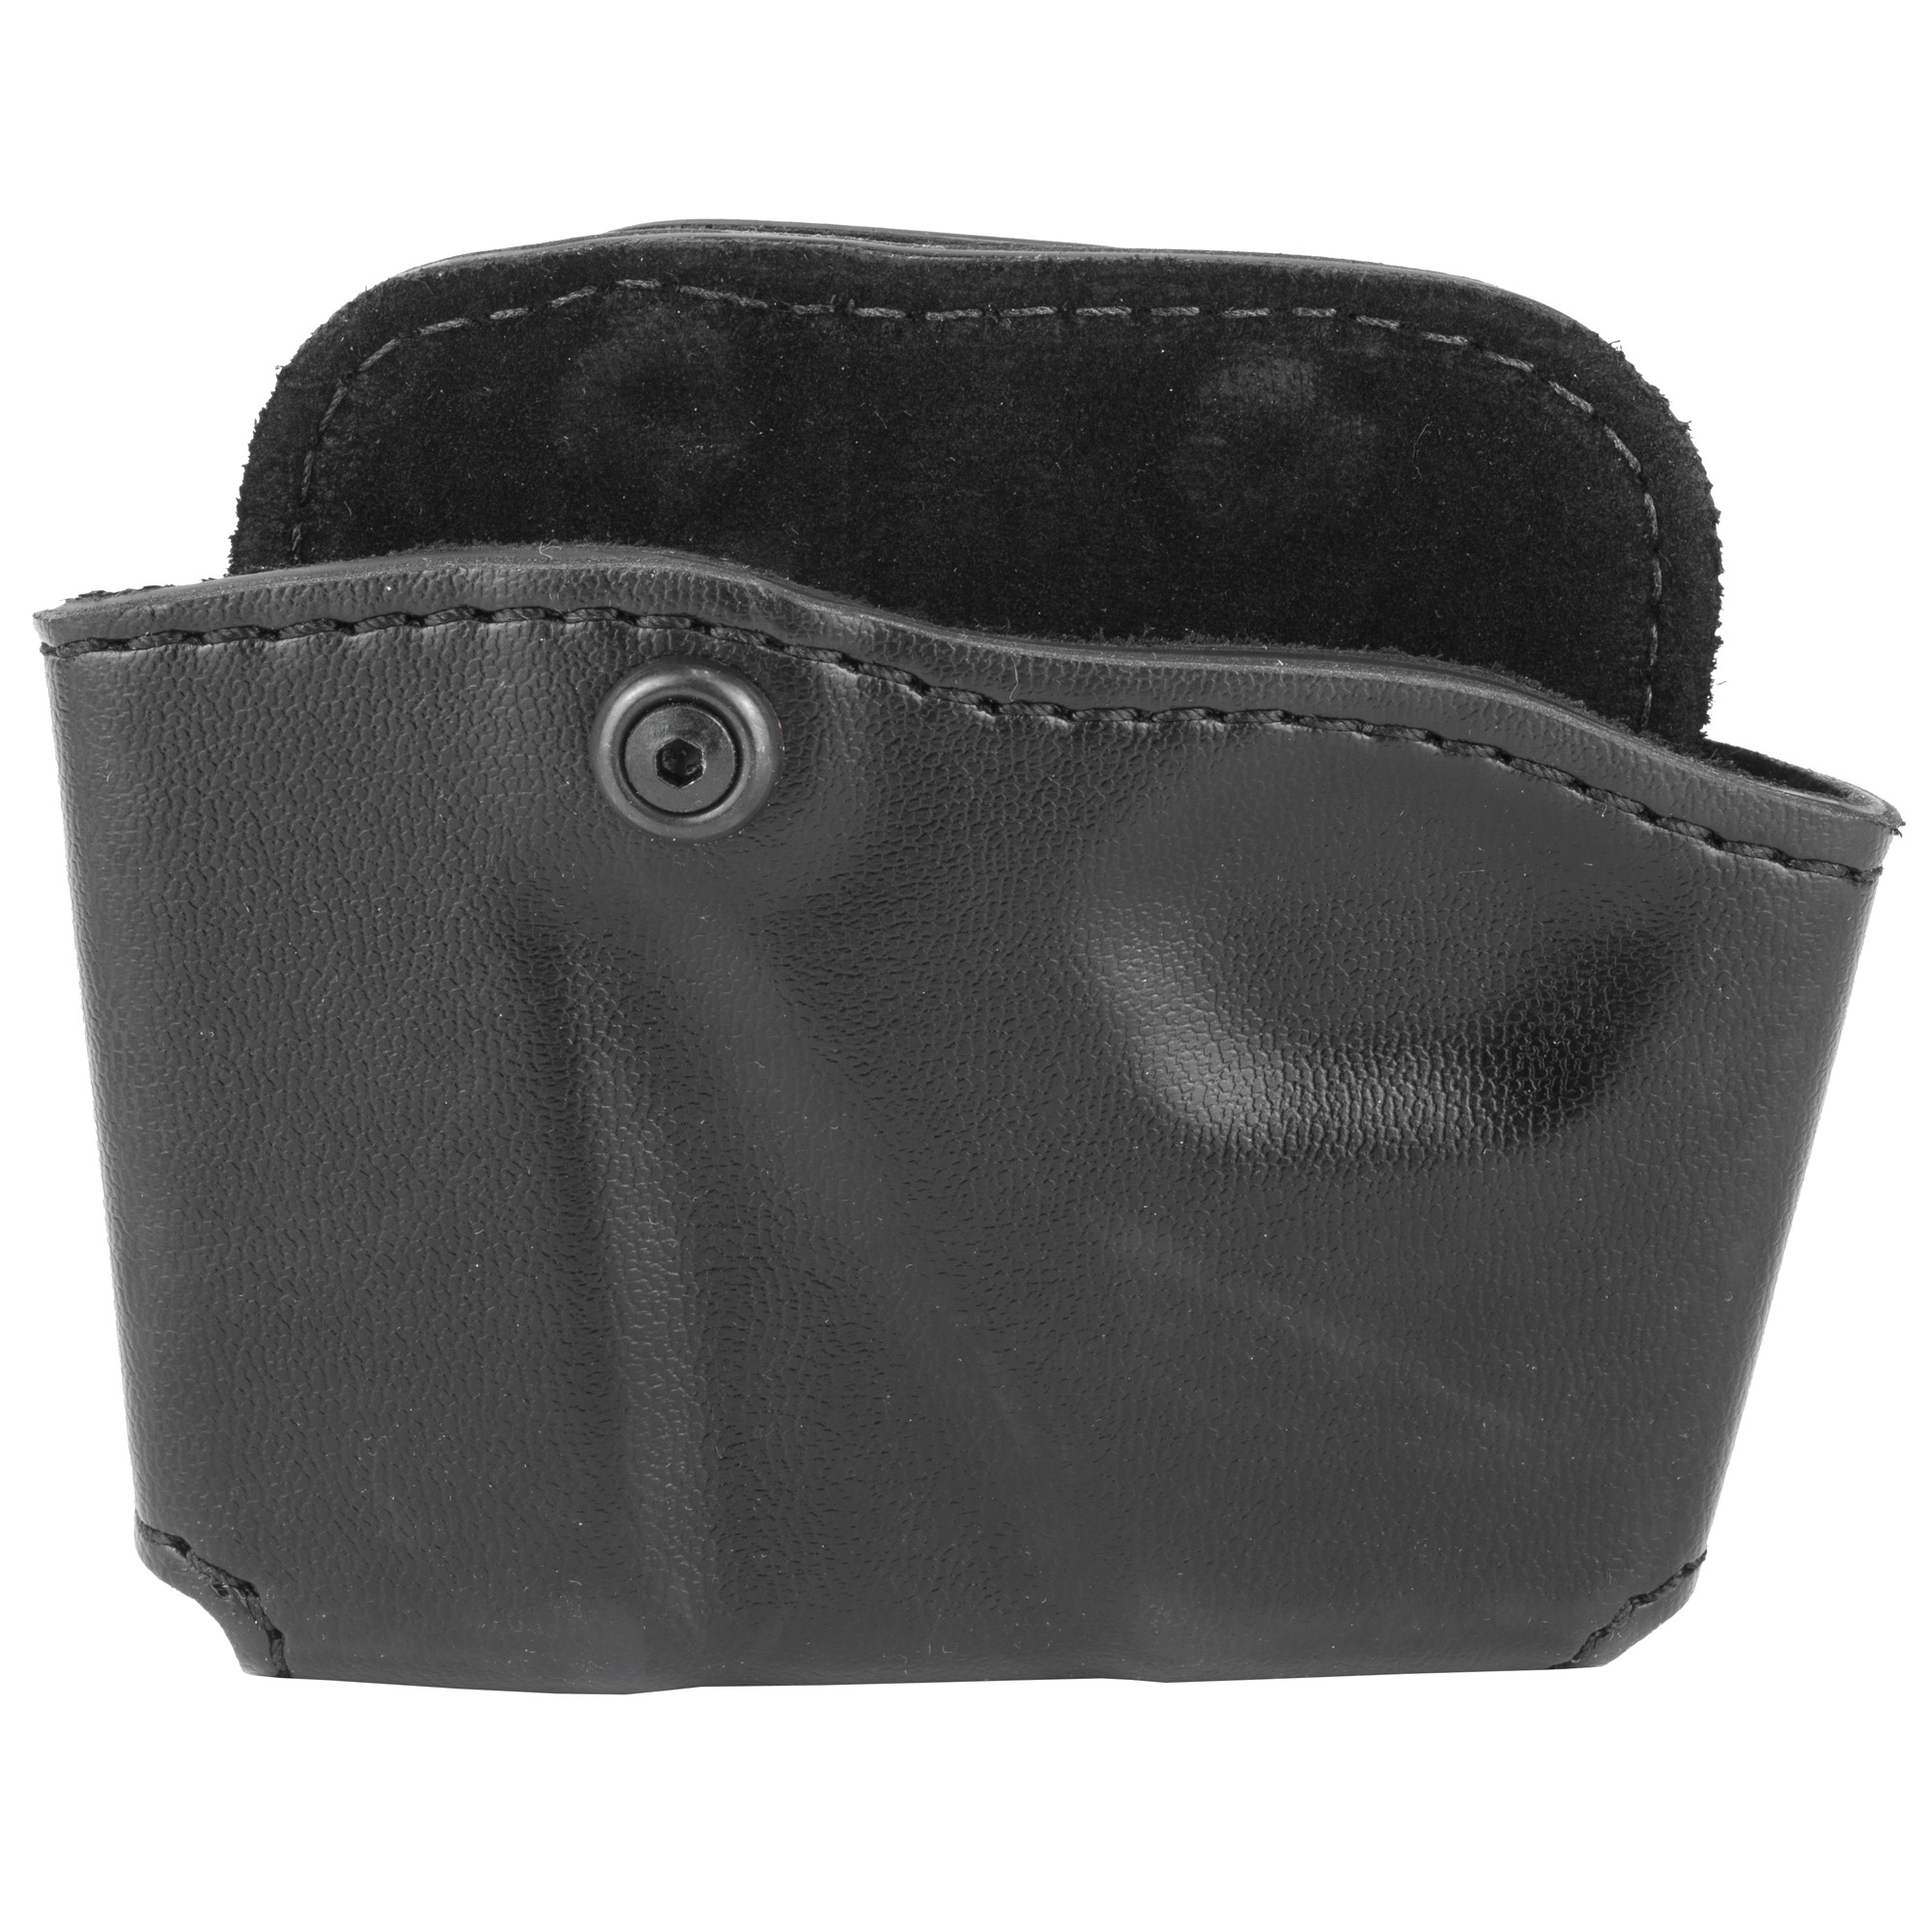 "The Model 573 is a handy combination magazine and handcuff pouch"" complete with a quick on/off paddle. Its SafariLaminate(TM) thermal molded construction provides durability and excellent equipment protection. Comfortable to wear"" it's suede lining holds the items securely and quietly. It features an Allen screw to adjust tension for magazine size. The unique paddle design is rigid in the center and flexible around the edges and includes a self-locking belt hook. Fits up to 1.75"" (45mm) belt."